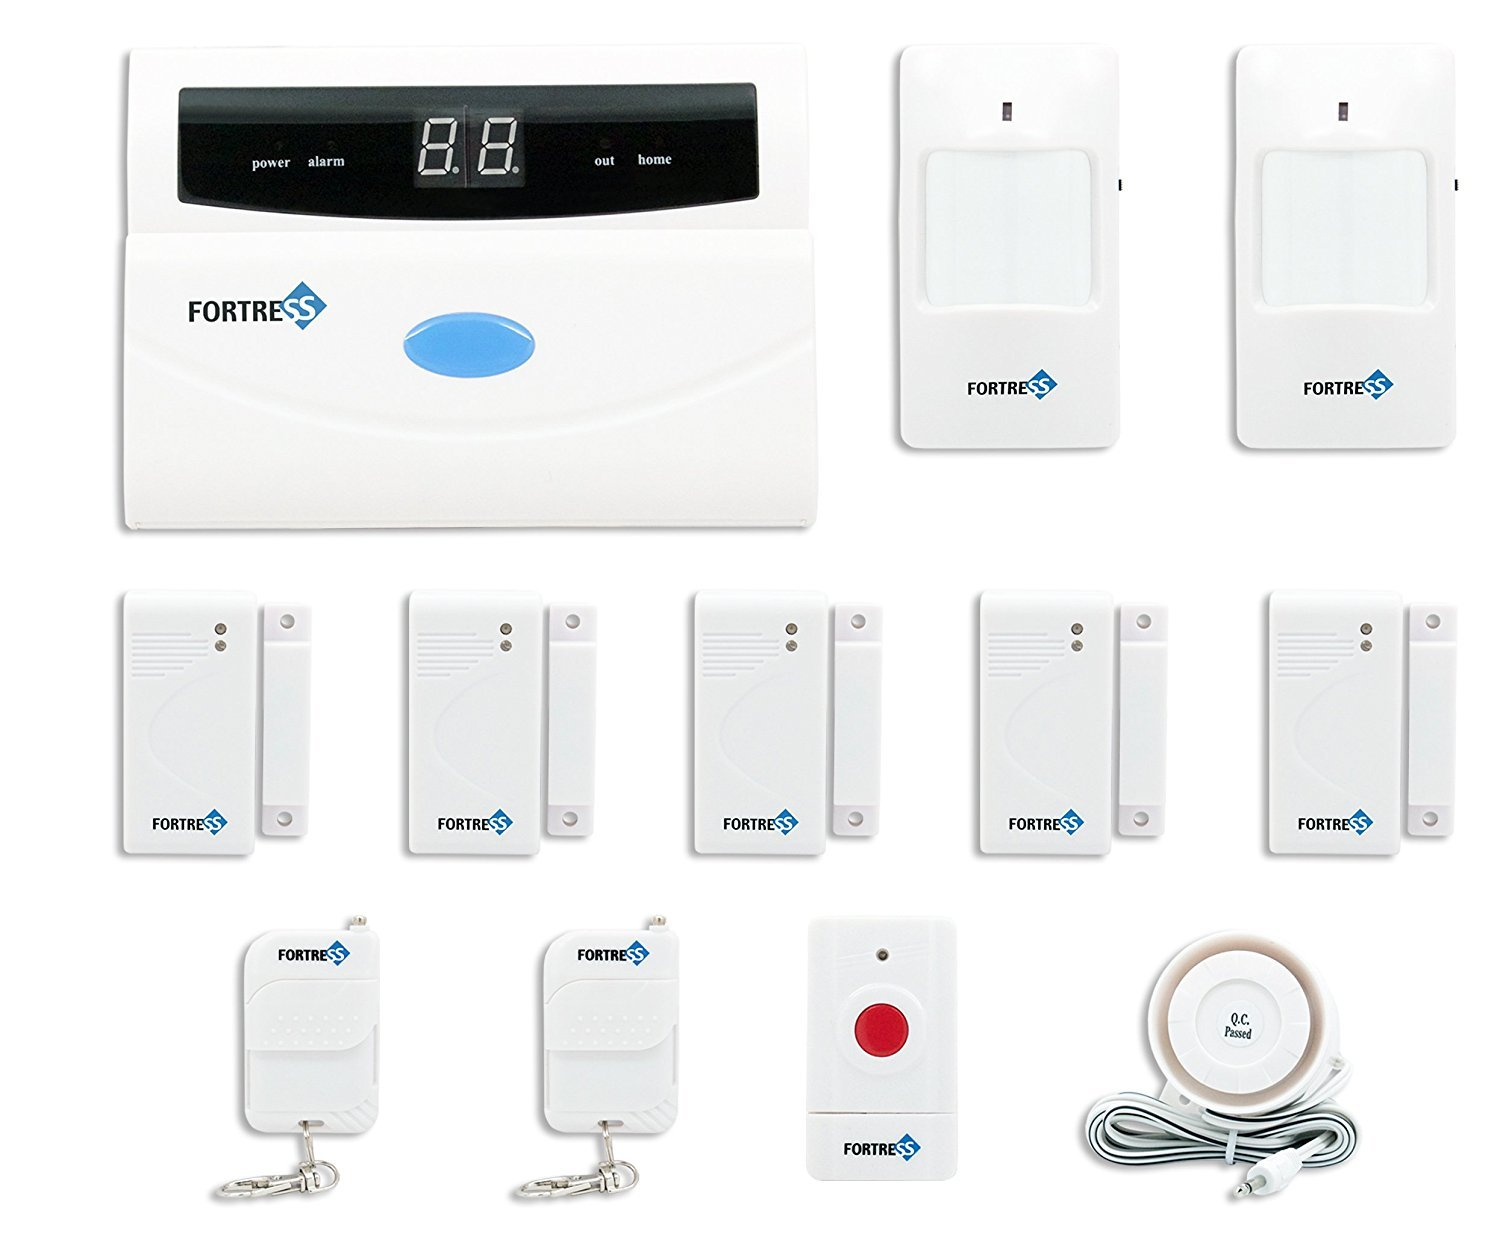 top 10 best wireless home security alarm systems 2018 2019 on flipboard by xayuk. Black Bedroom Furniture Sets. Home Design Ideas